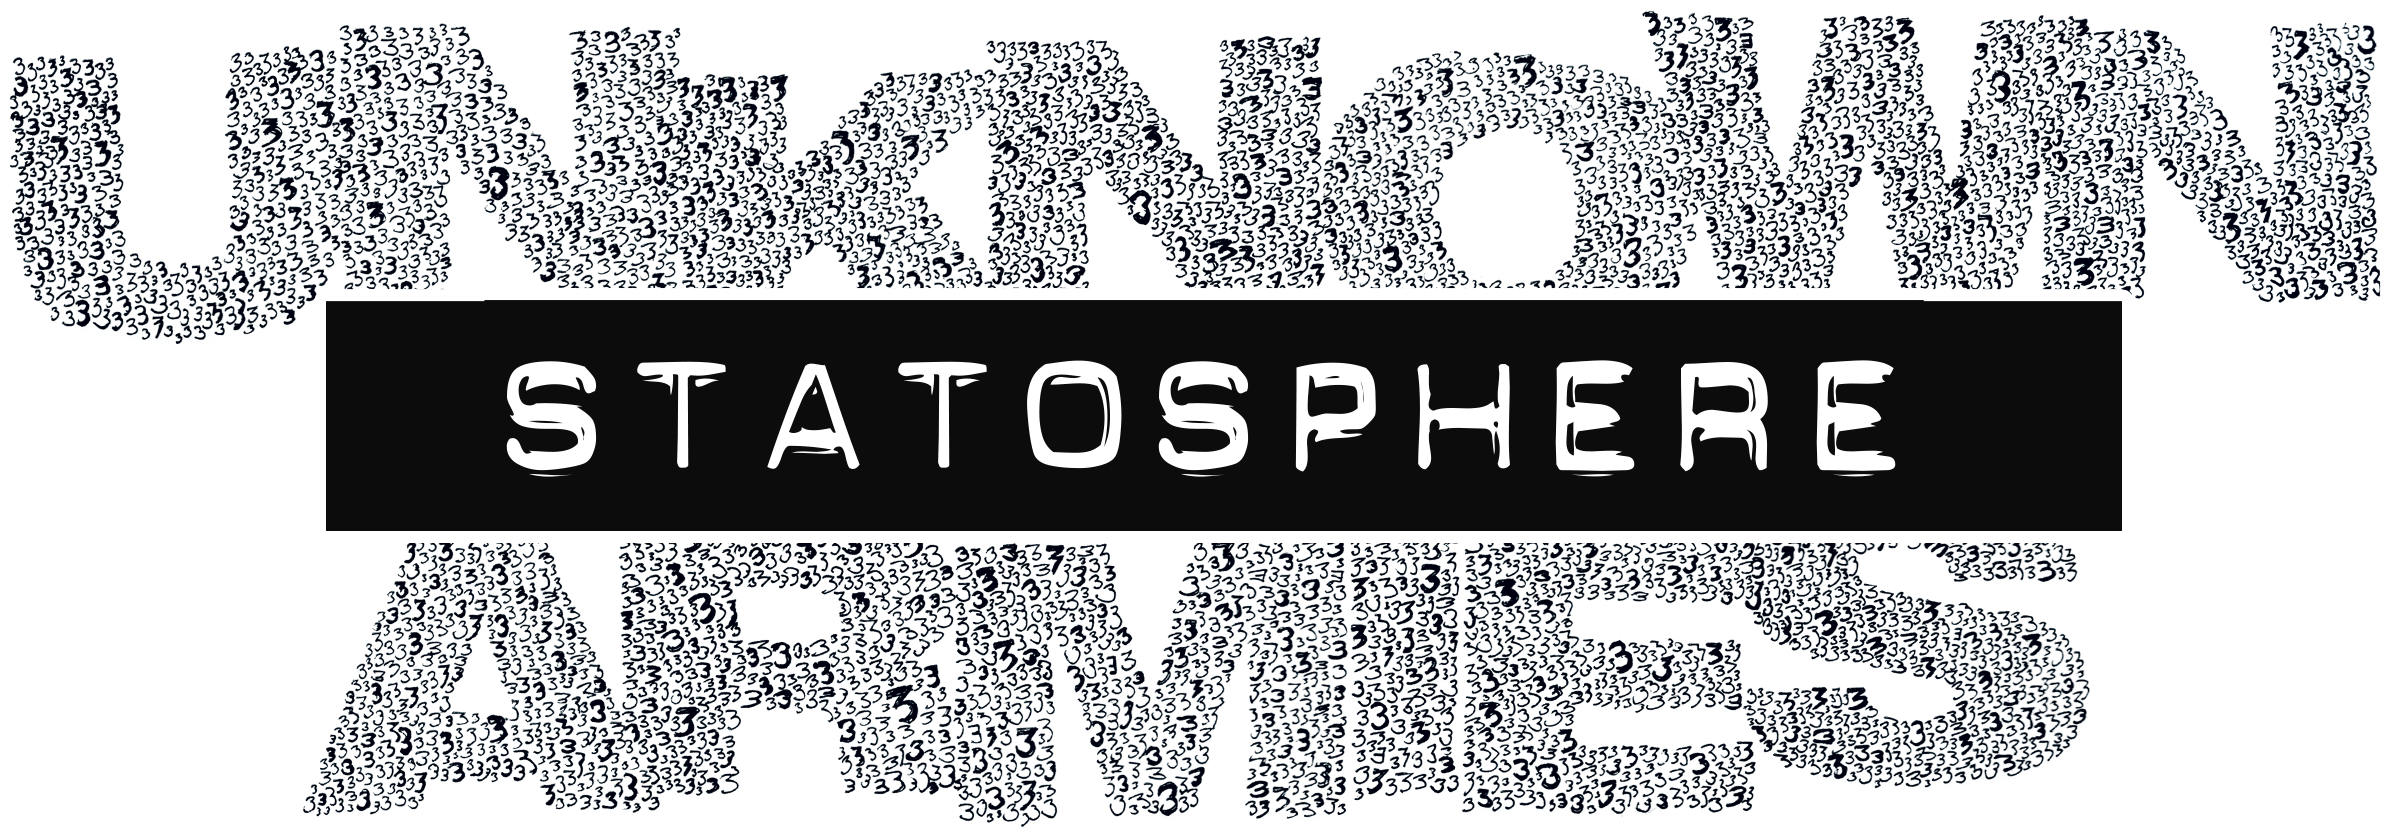 Find more Unknown Armies community content on the Statosphere, hosted by DrivethruRPG.